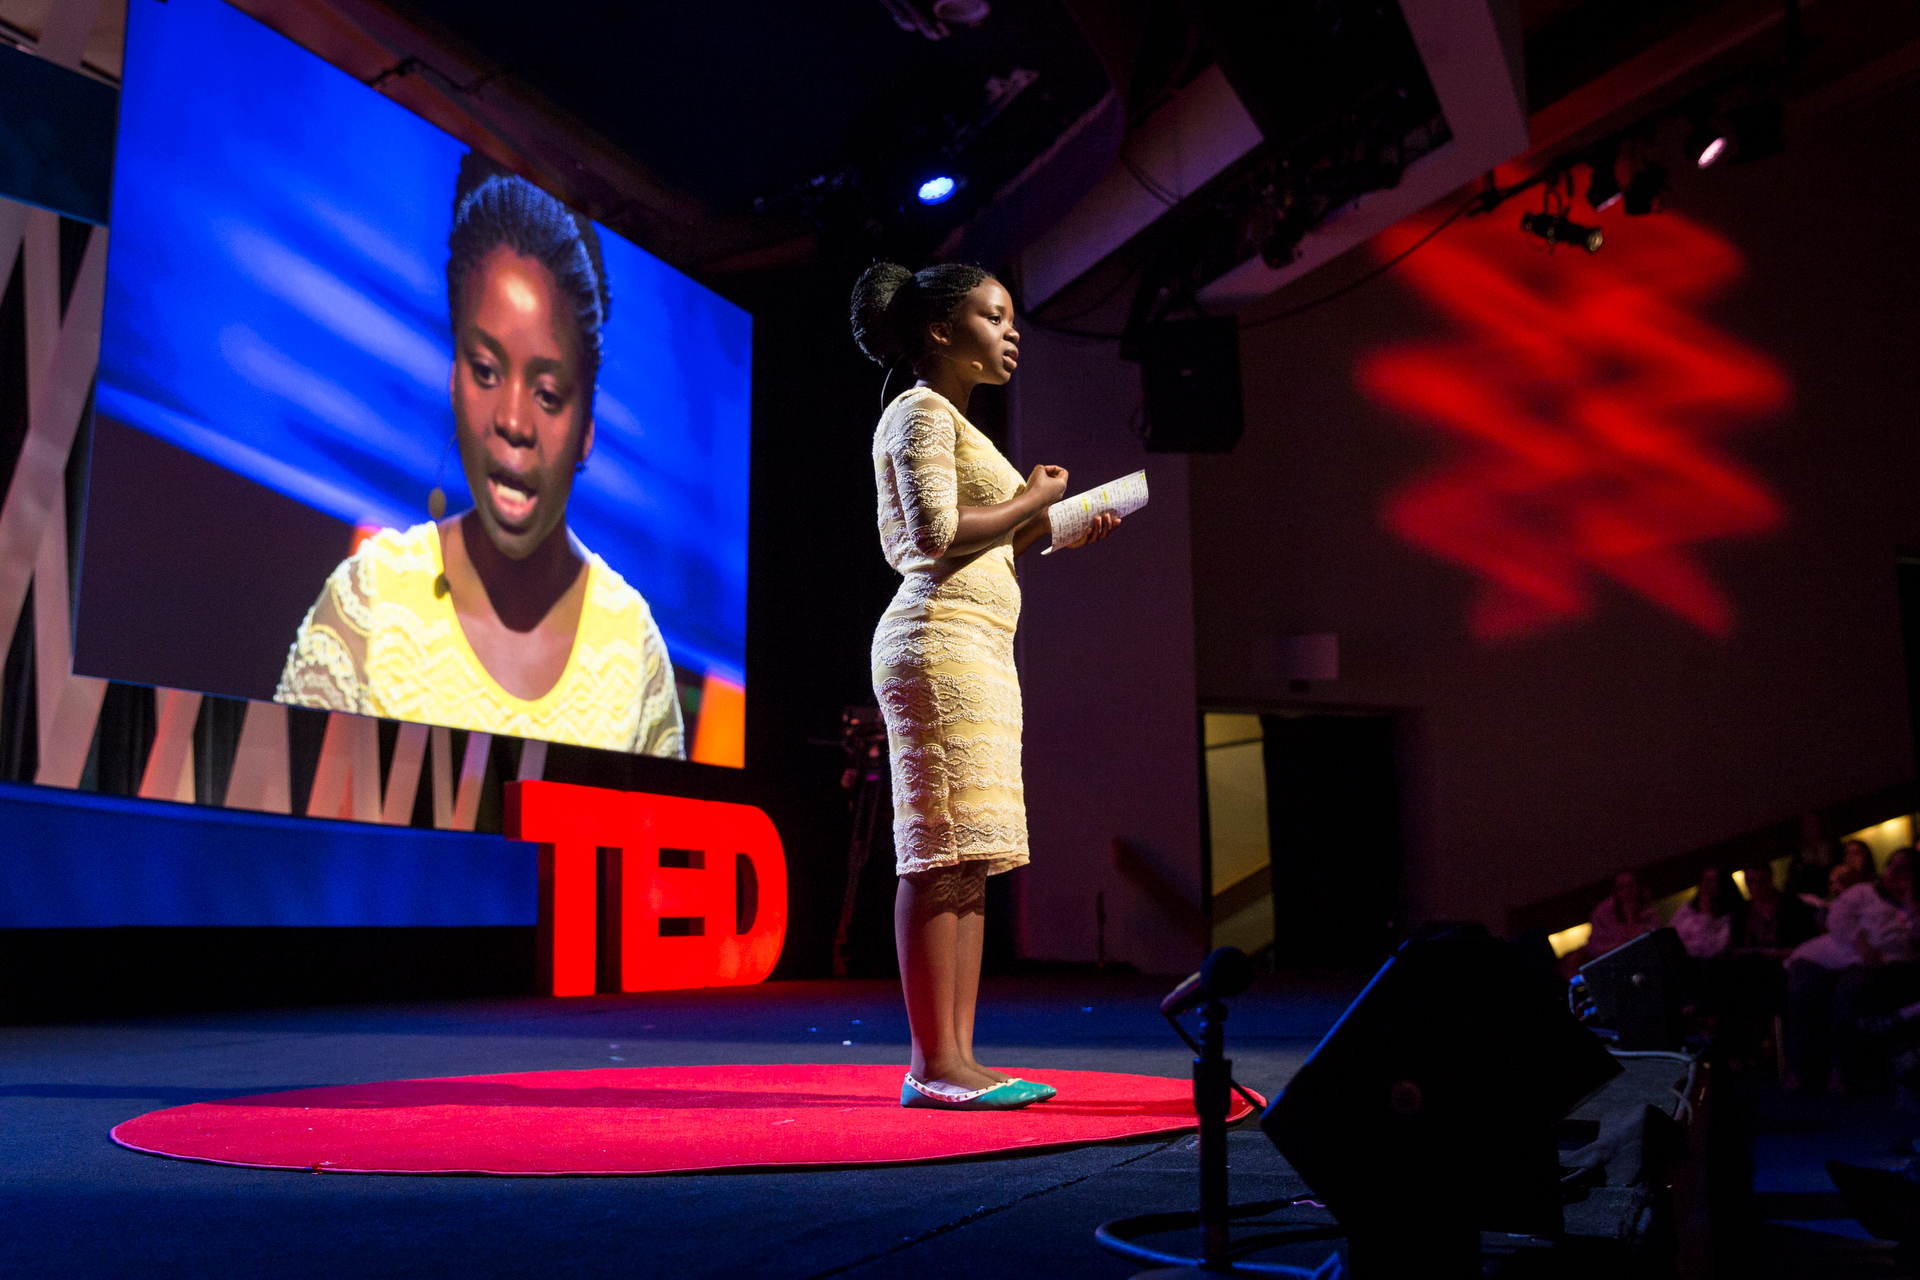 Memory Banda speaks at TEDWomen2015 - Momentum, Session 4, May 28, 2015, Monterey Conference Center, Monterey, California, USA. Photo: Marla Aufmuth/TED